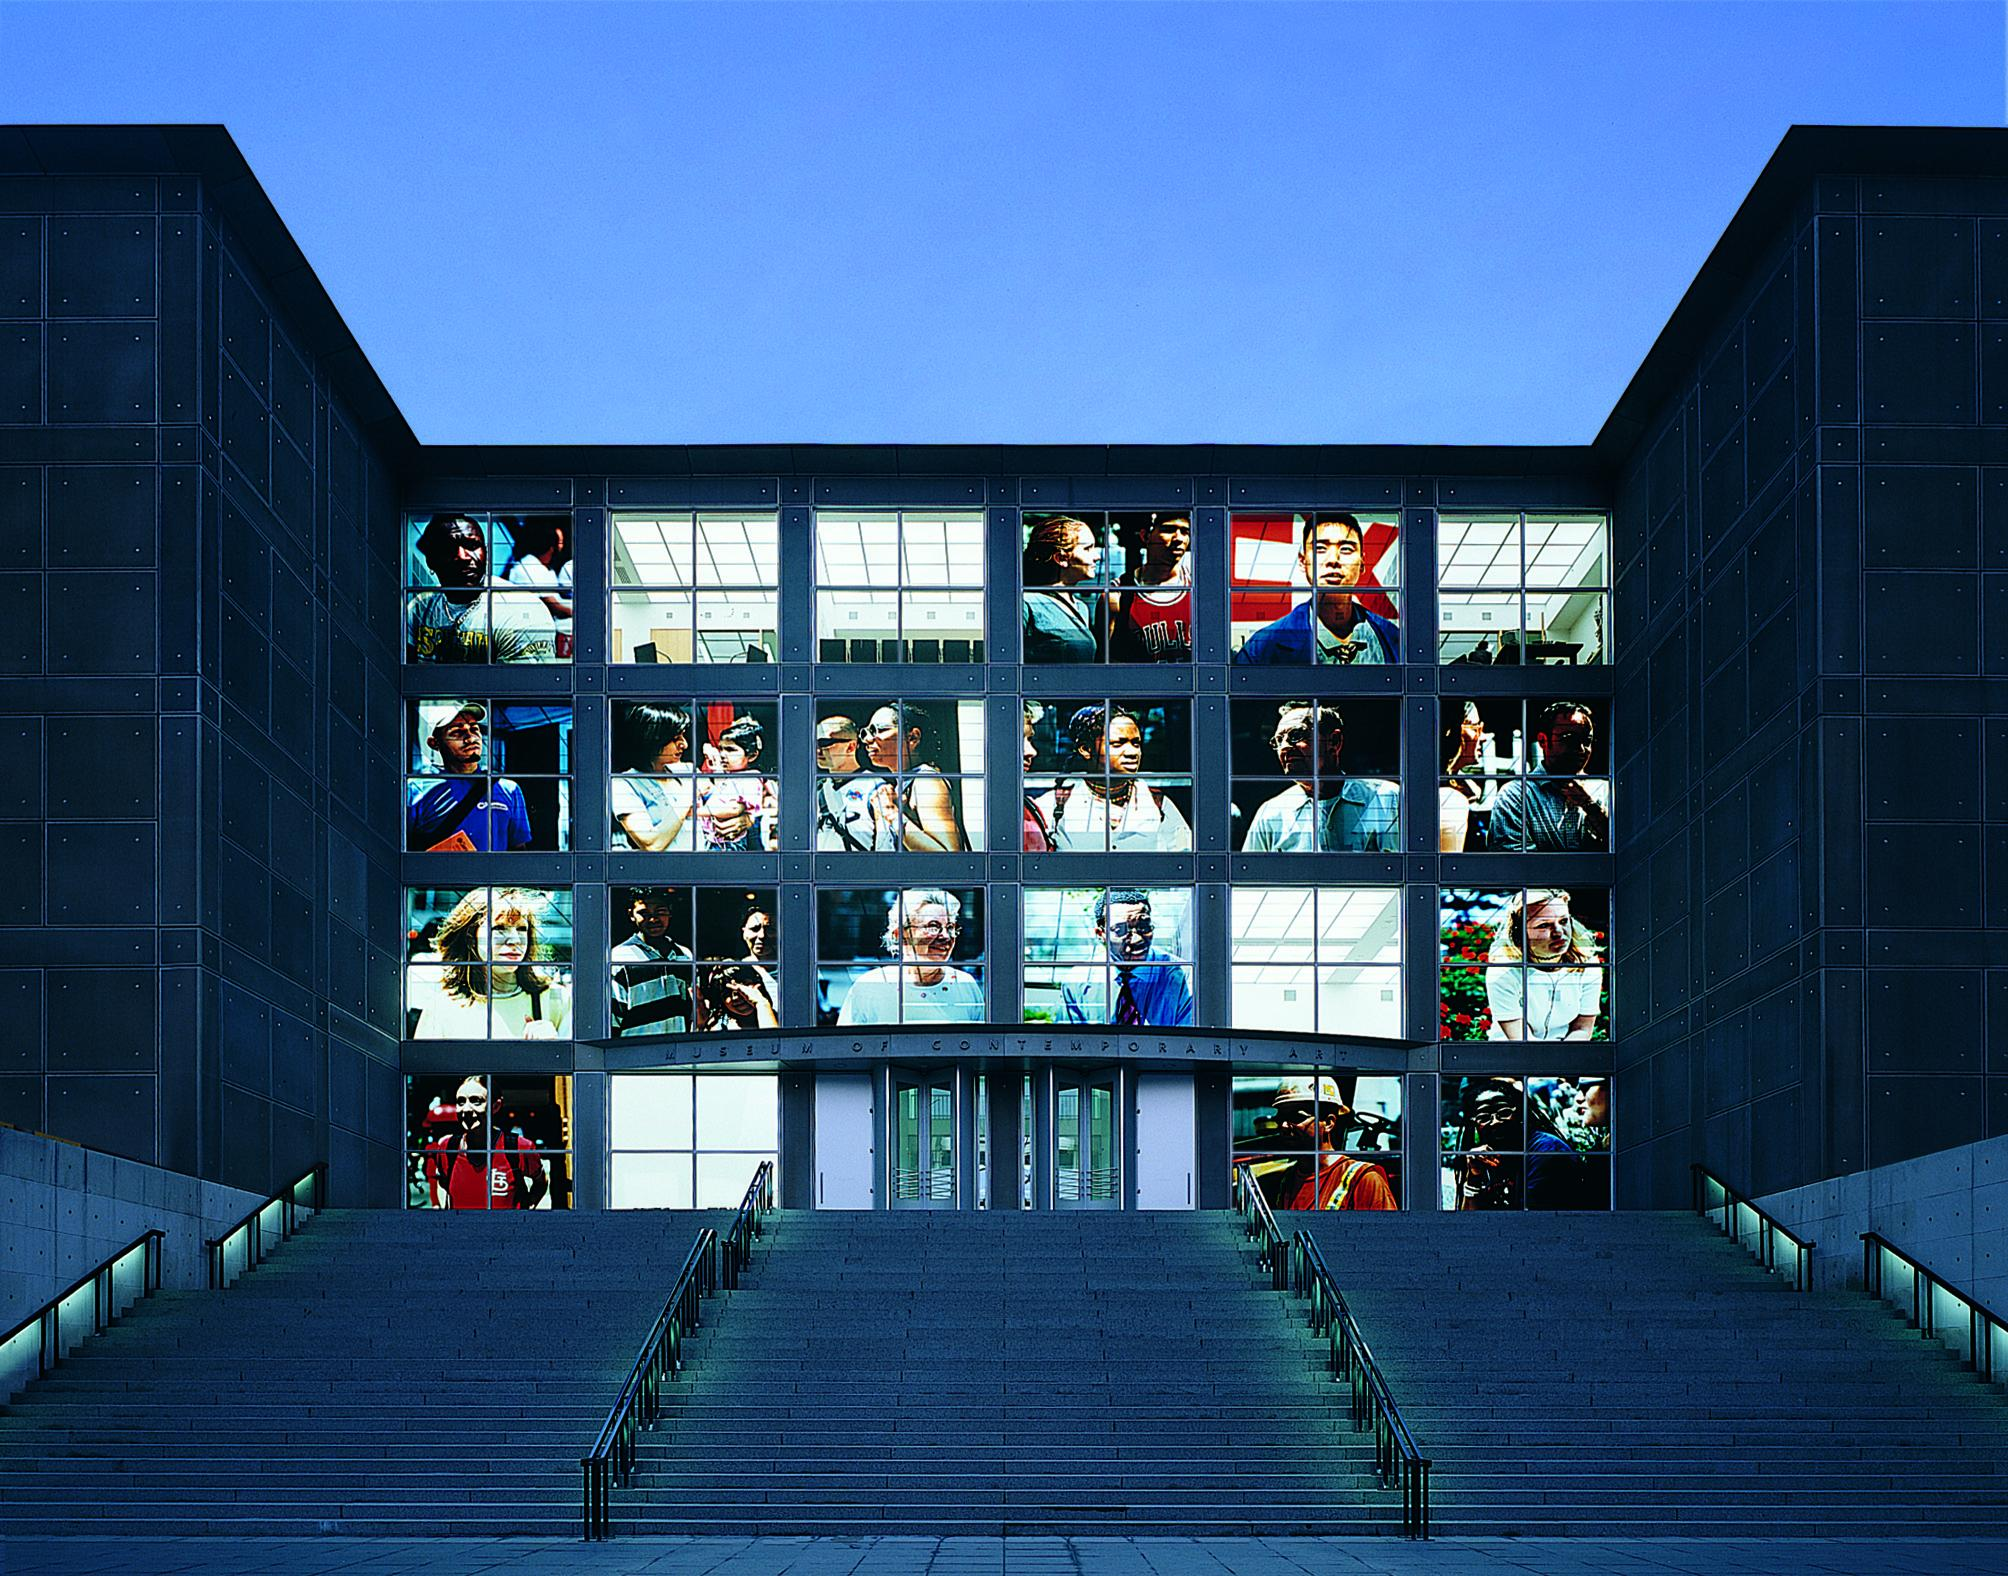 The front windows of the MCA illuminated with large close-up photographs of people.